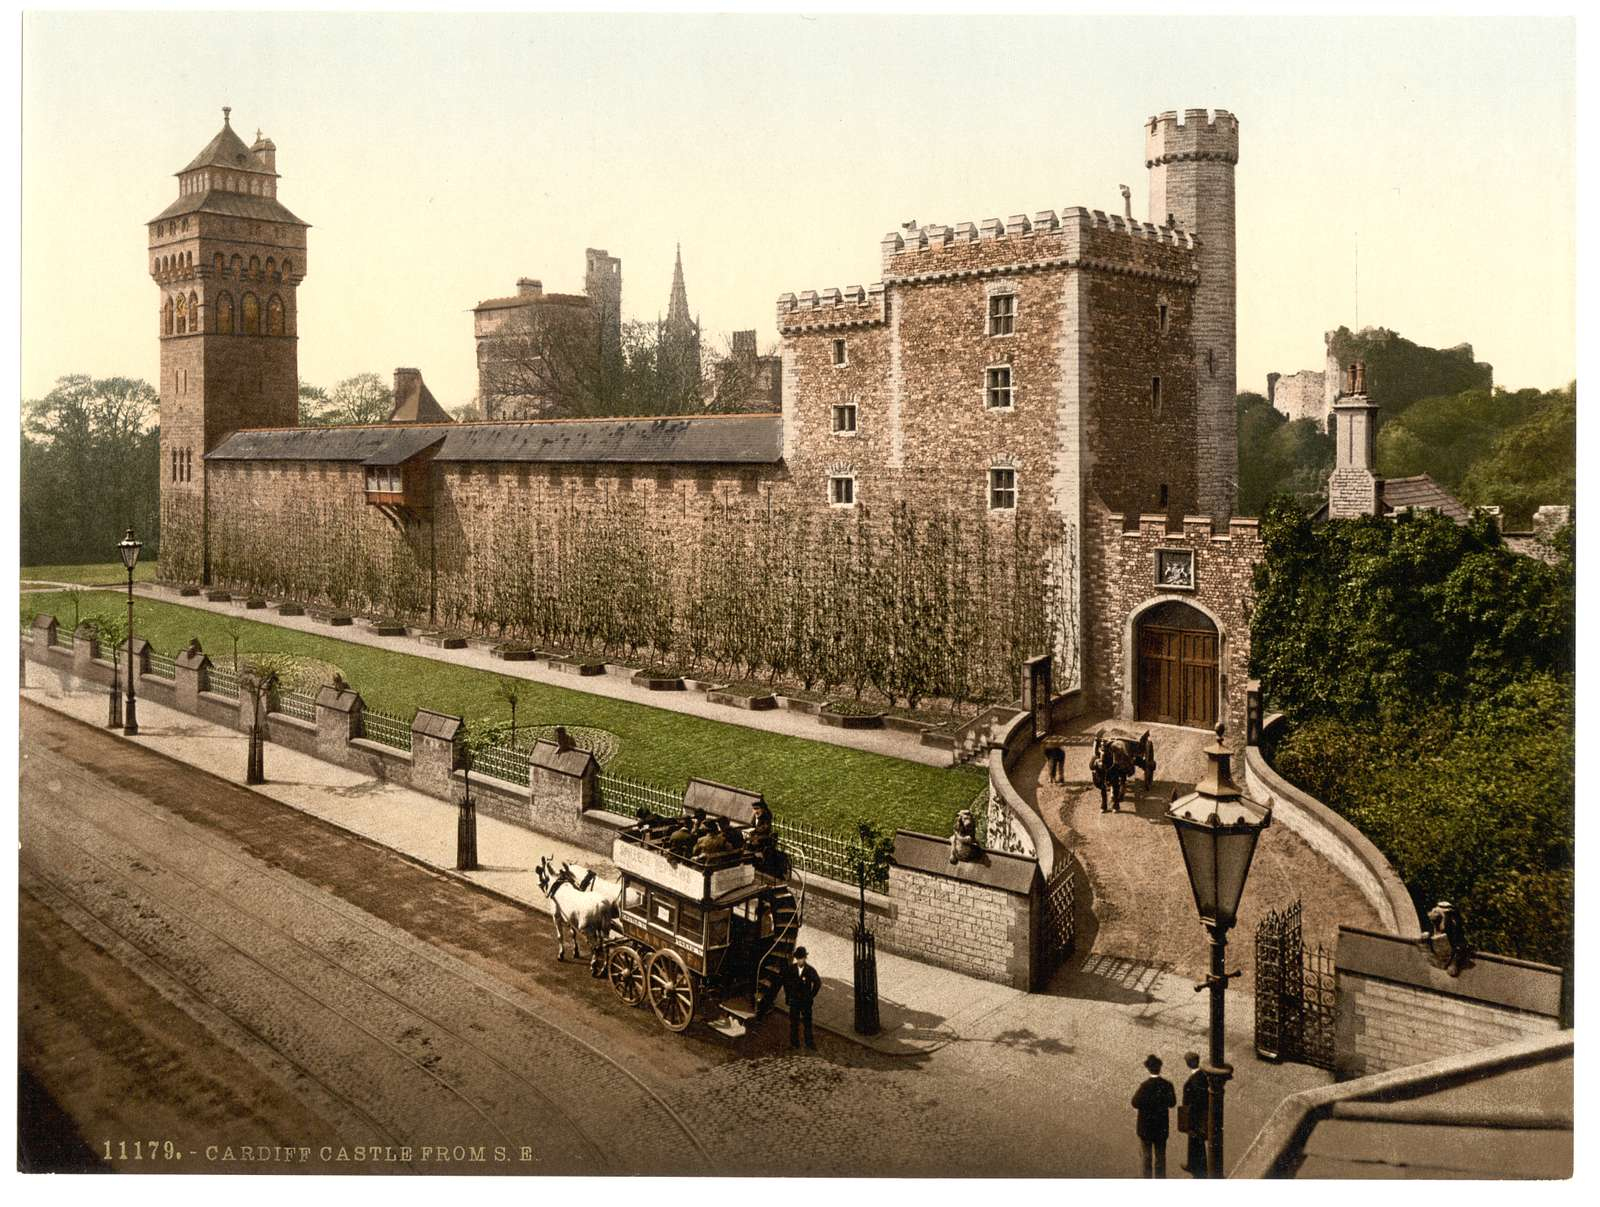 [From the southeast, Cardiff Castle, Wales]